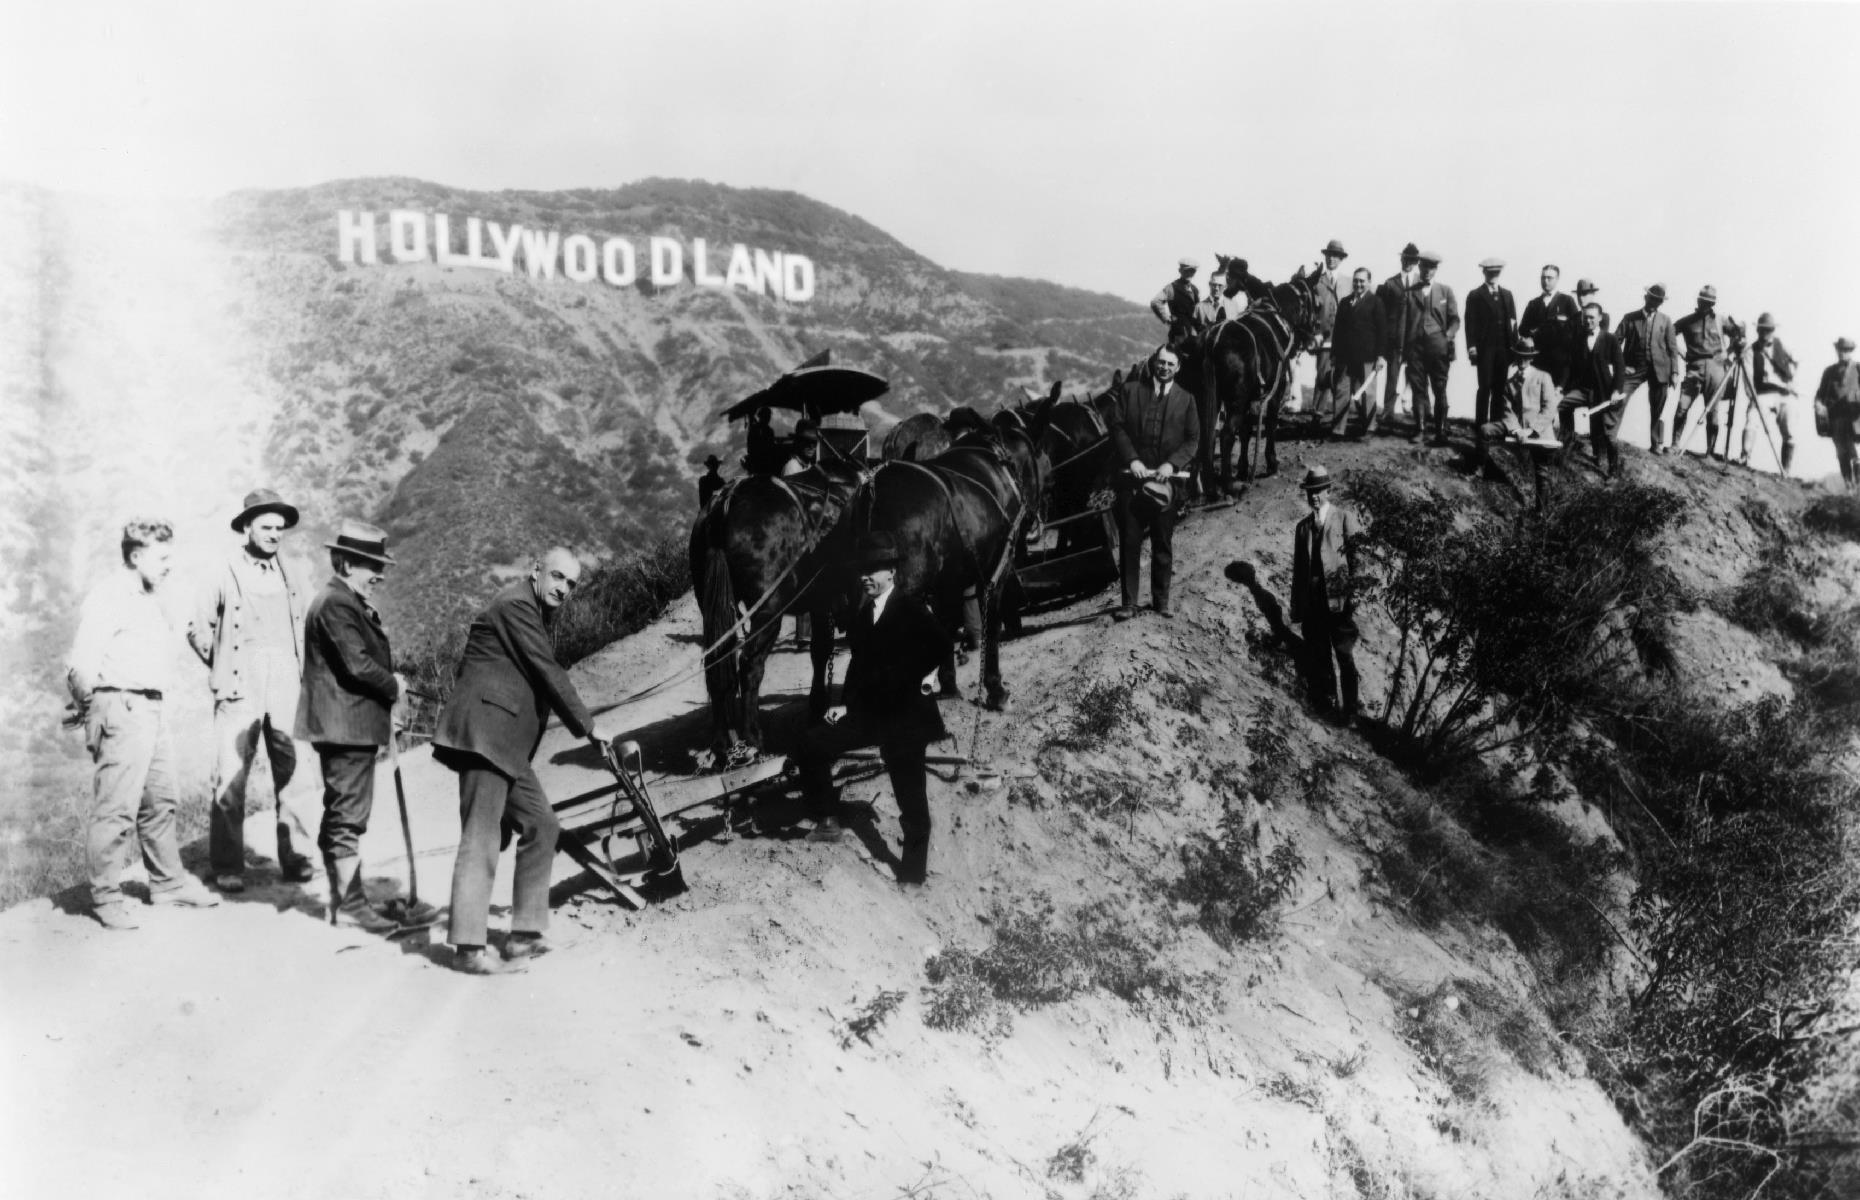 """Slide 24 of 51: You might be surprised to learn that the Hollywood sign that towers above Los Angeles once read """"Hollywoodland"""", as shown in this image from 1925, in which a group of surveyors pose underneath it. However in 1949, it was decided that the sign – which was originally built as a temporary advertisement for a housing development – should drop the """"land"""", in order to refer to the whole area. Now, the famous backdrop is captured on many tourists' cameras."""